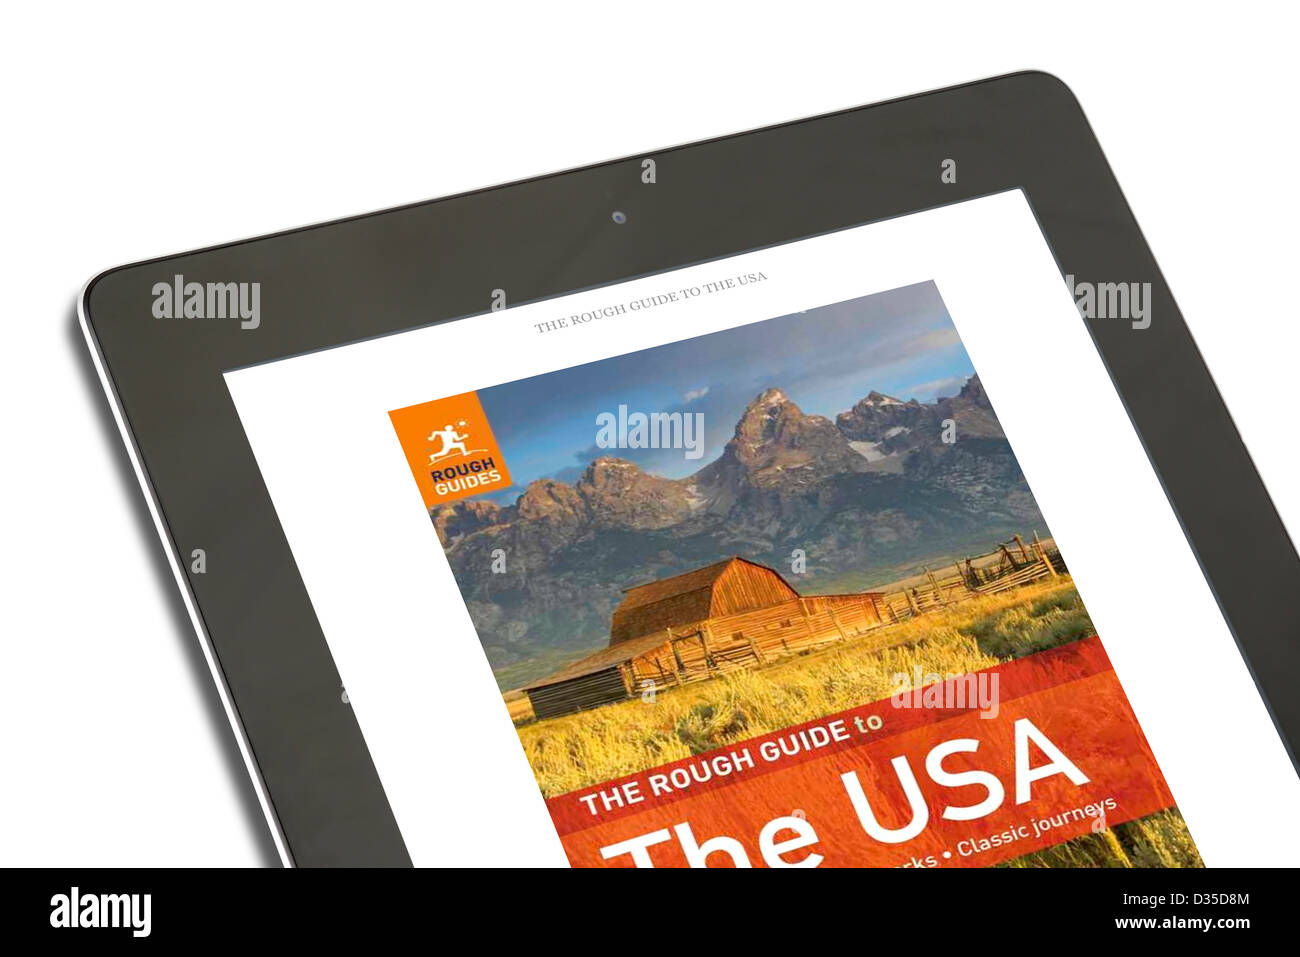 Reading a Rough Guide travel book with the Kindle app on an